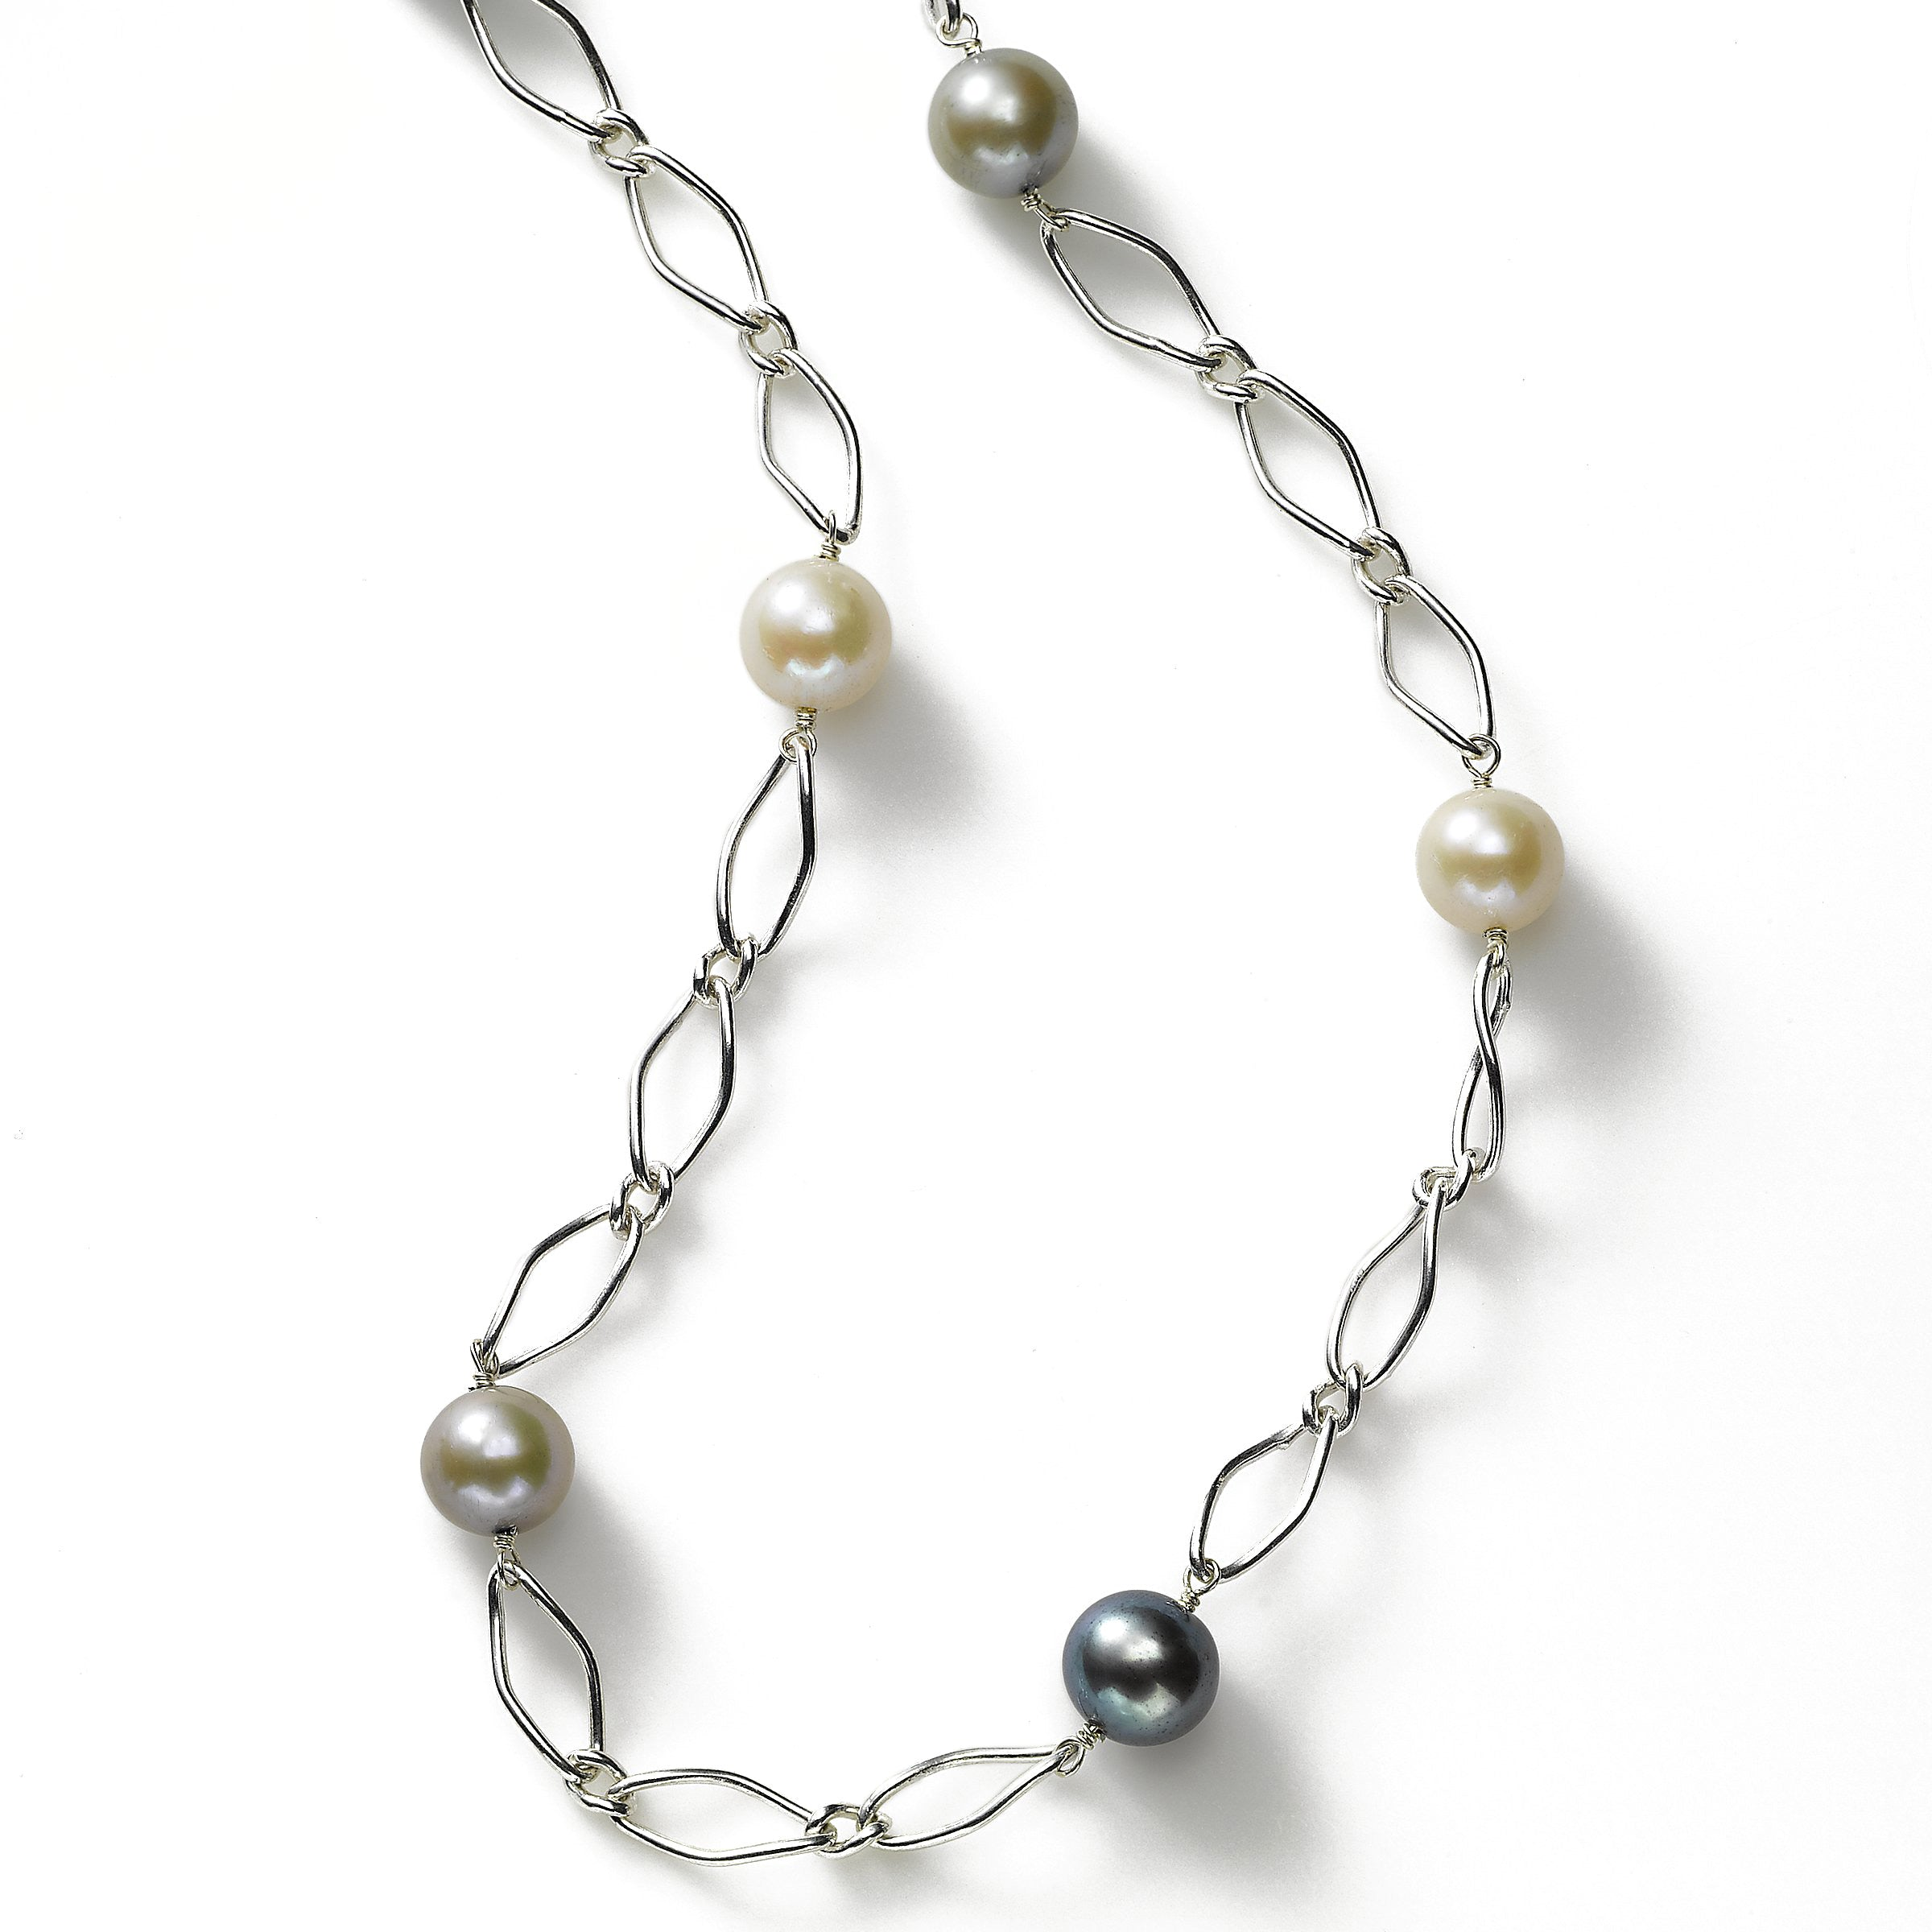 Multi-Color Freshwater Pearls, 9 mm, 36 inches, Sterling Silver